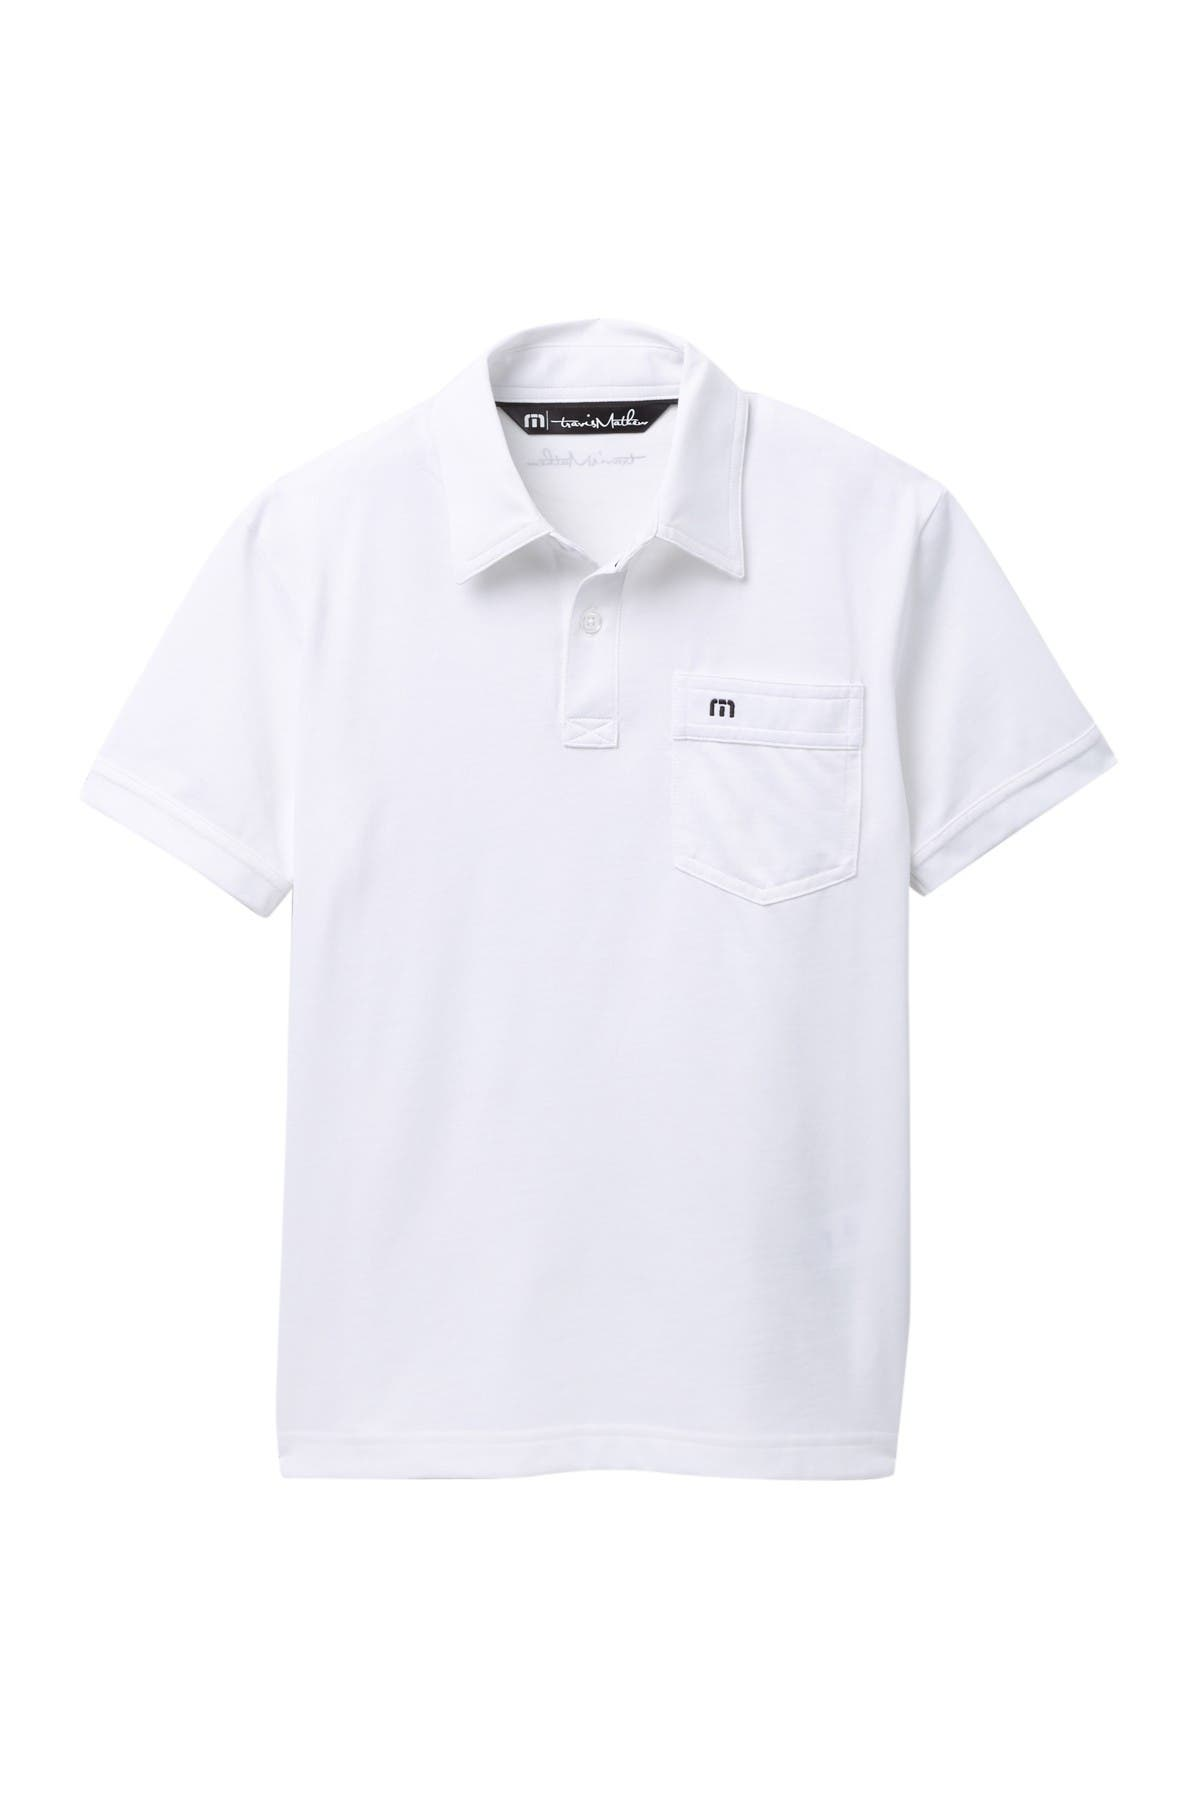 Image of TRAVIS MATHEW OG Polo